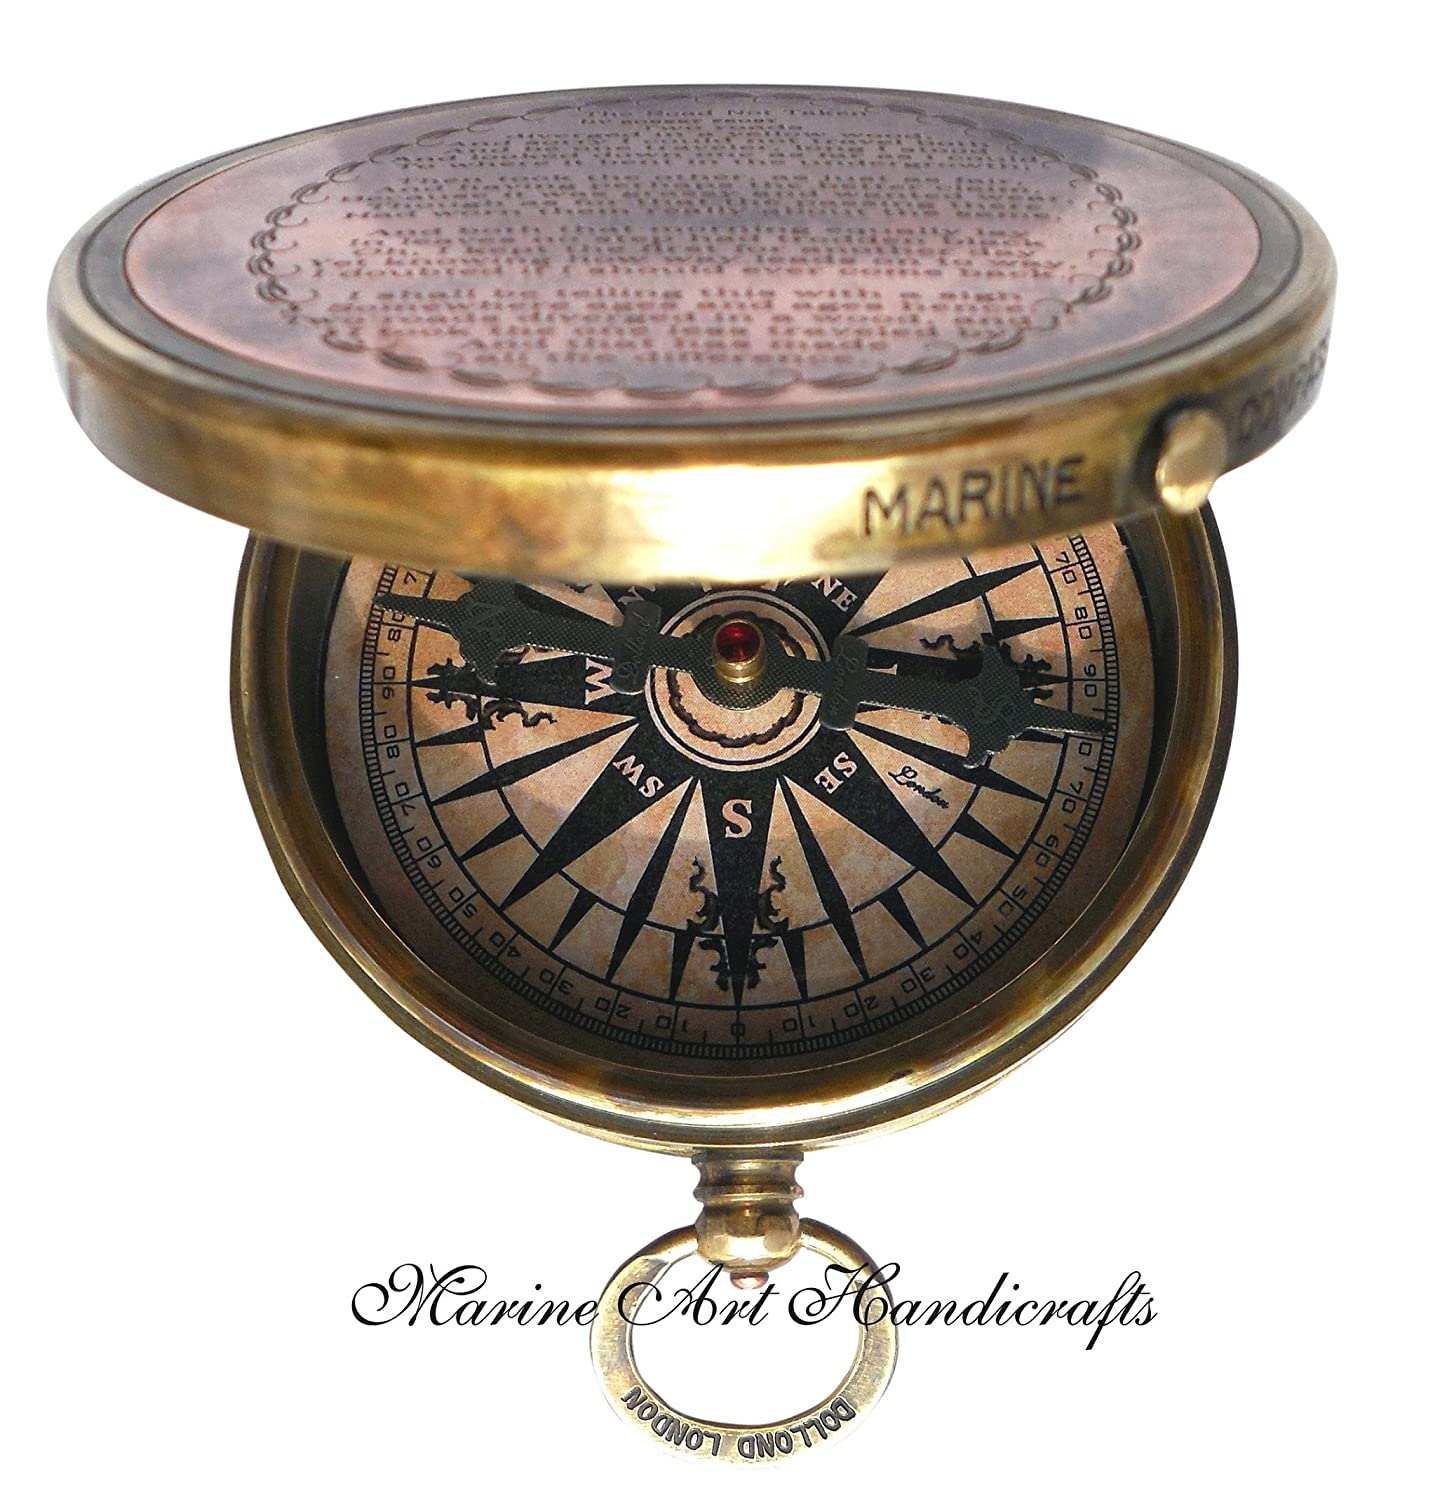 ''Robert Frost Poem'' Engraved Brass Compass with Embossed Needle & with Leather Case. C-3241 Marine Art Handicrafts